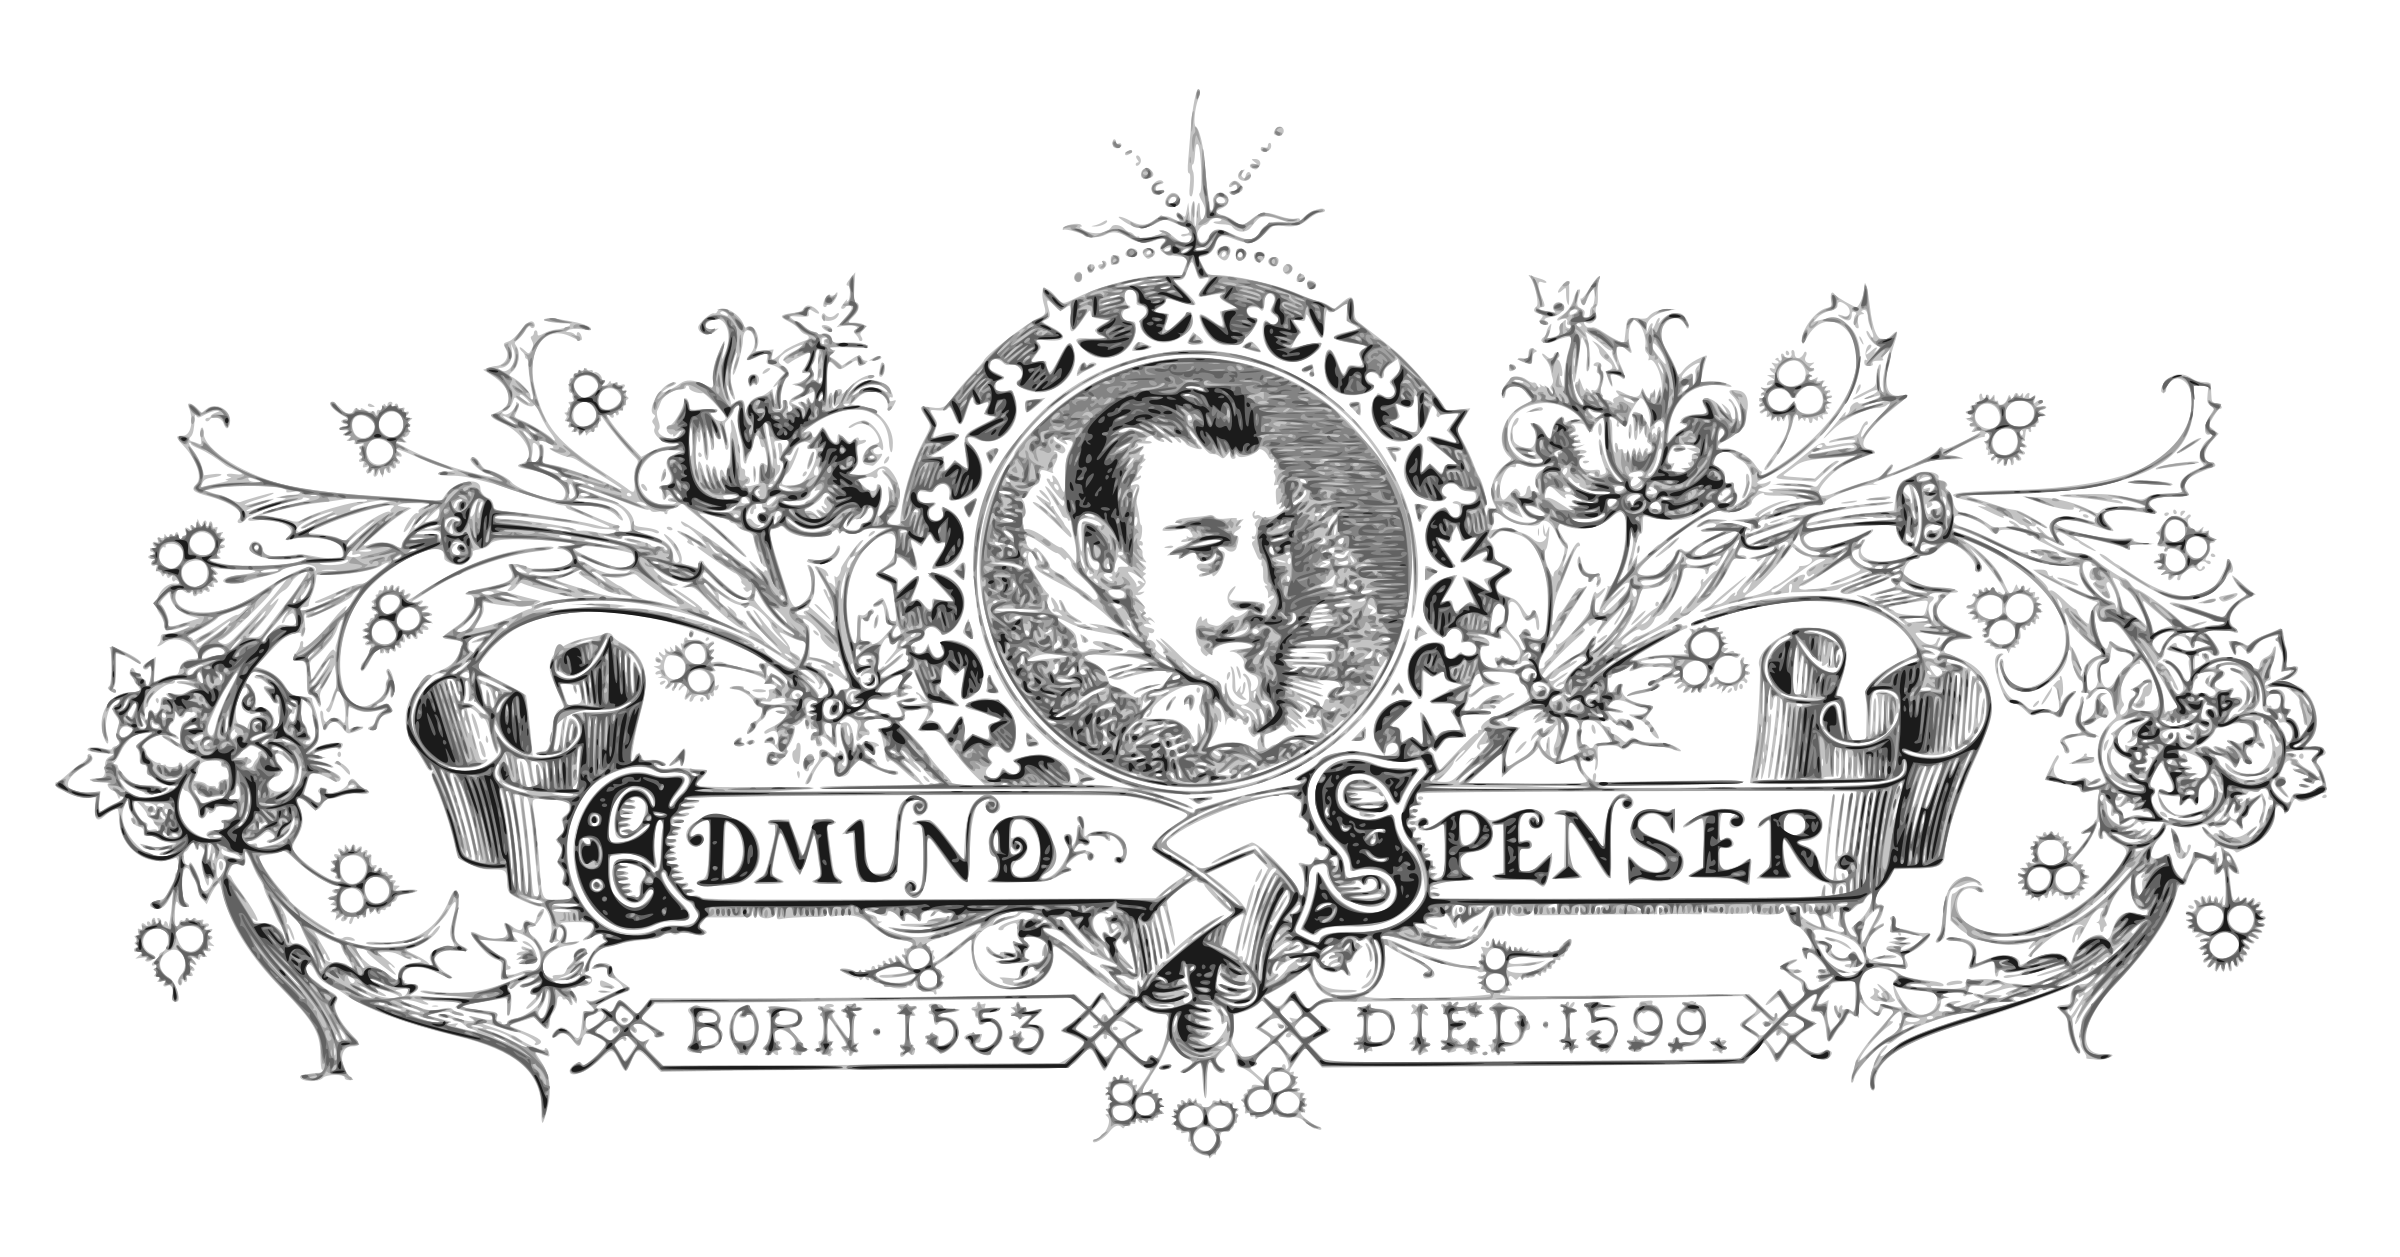 Edmund Spenser by Firkin